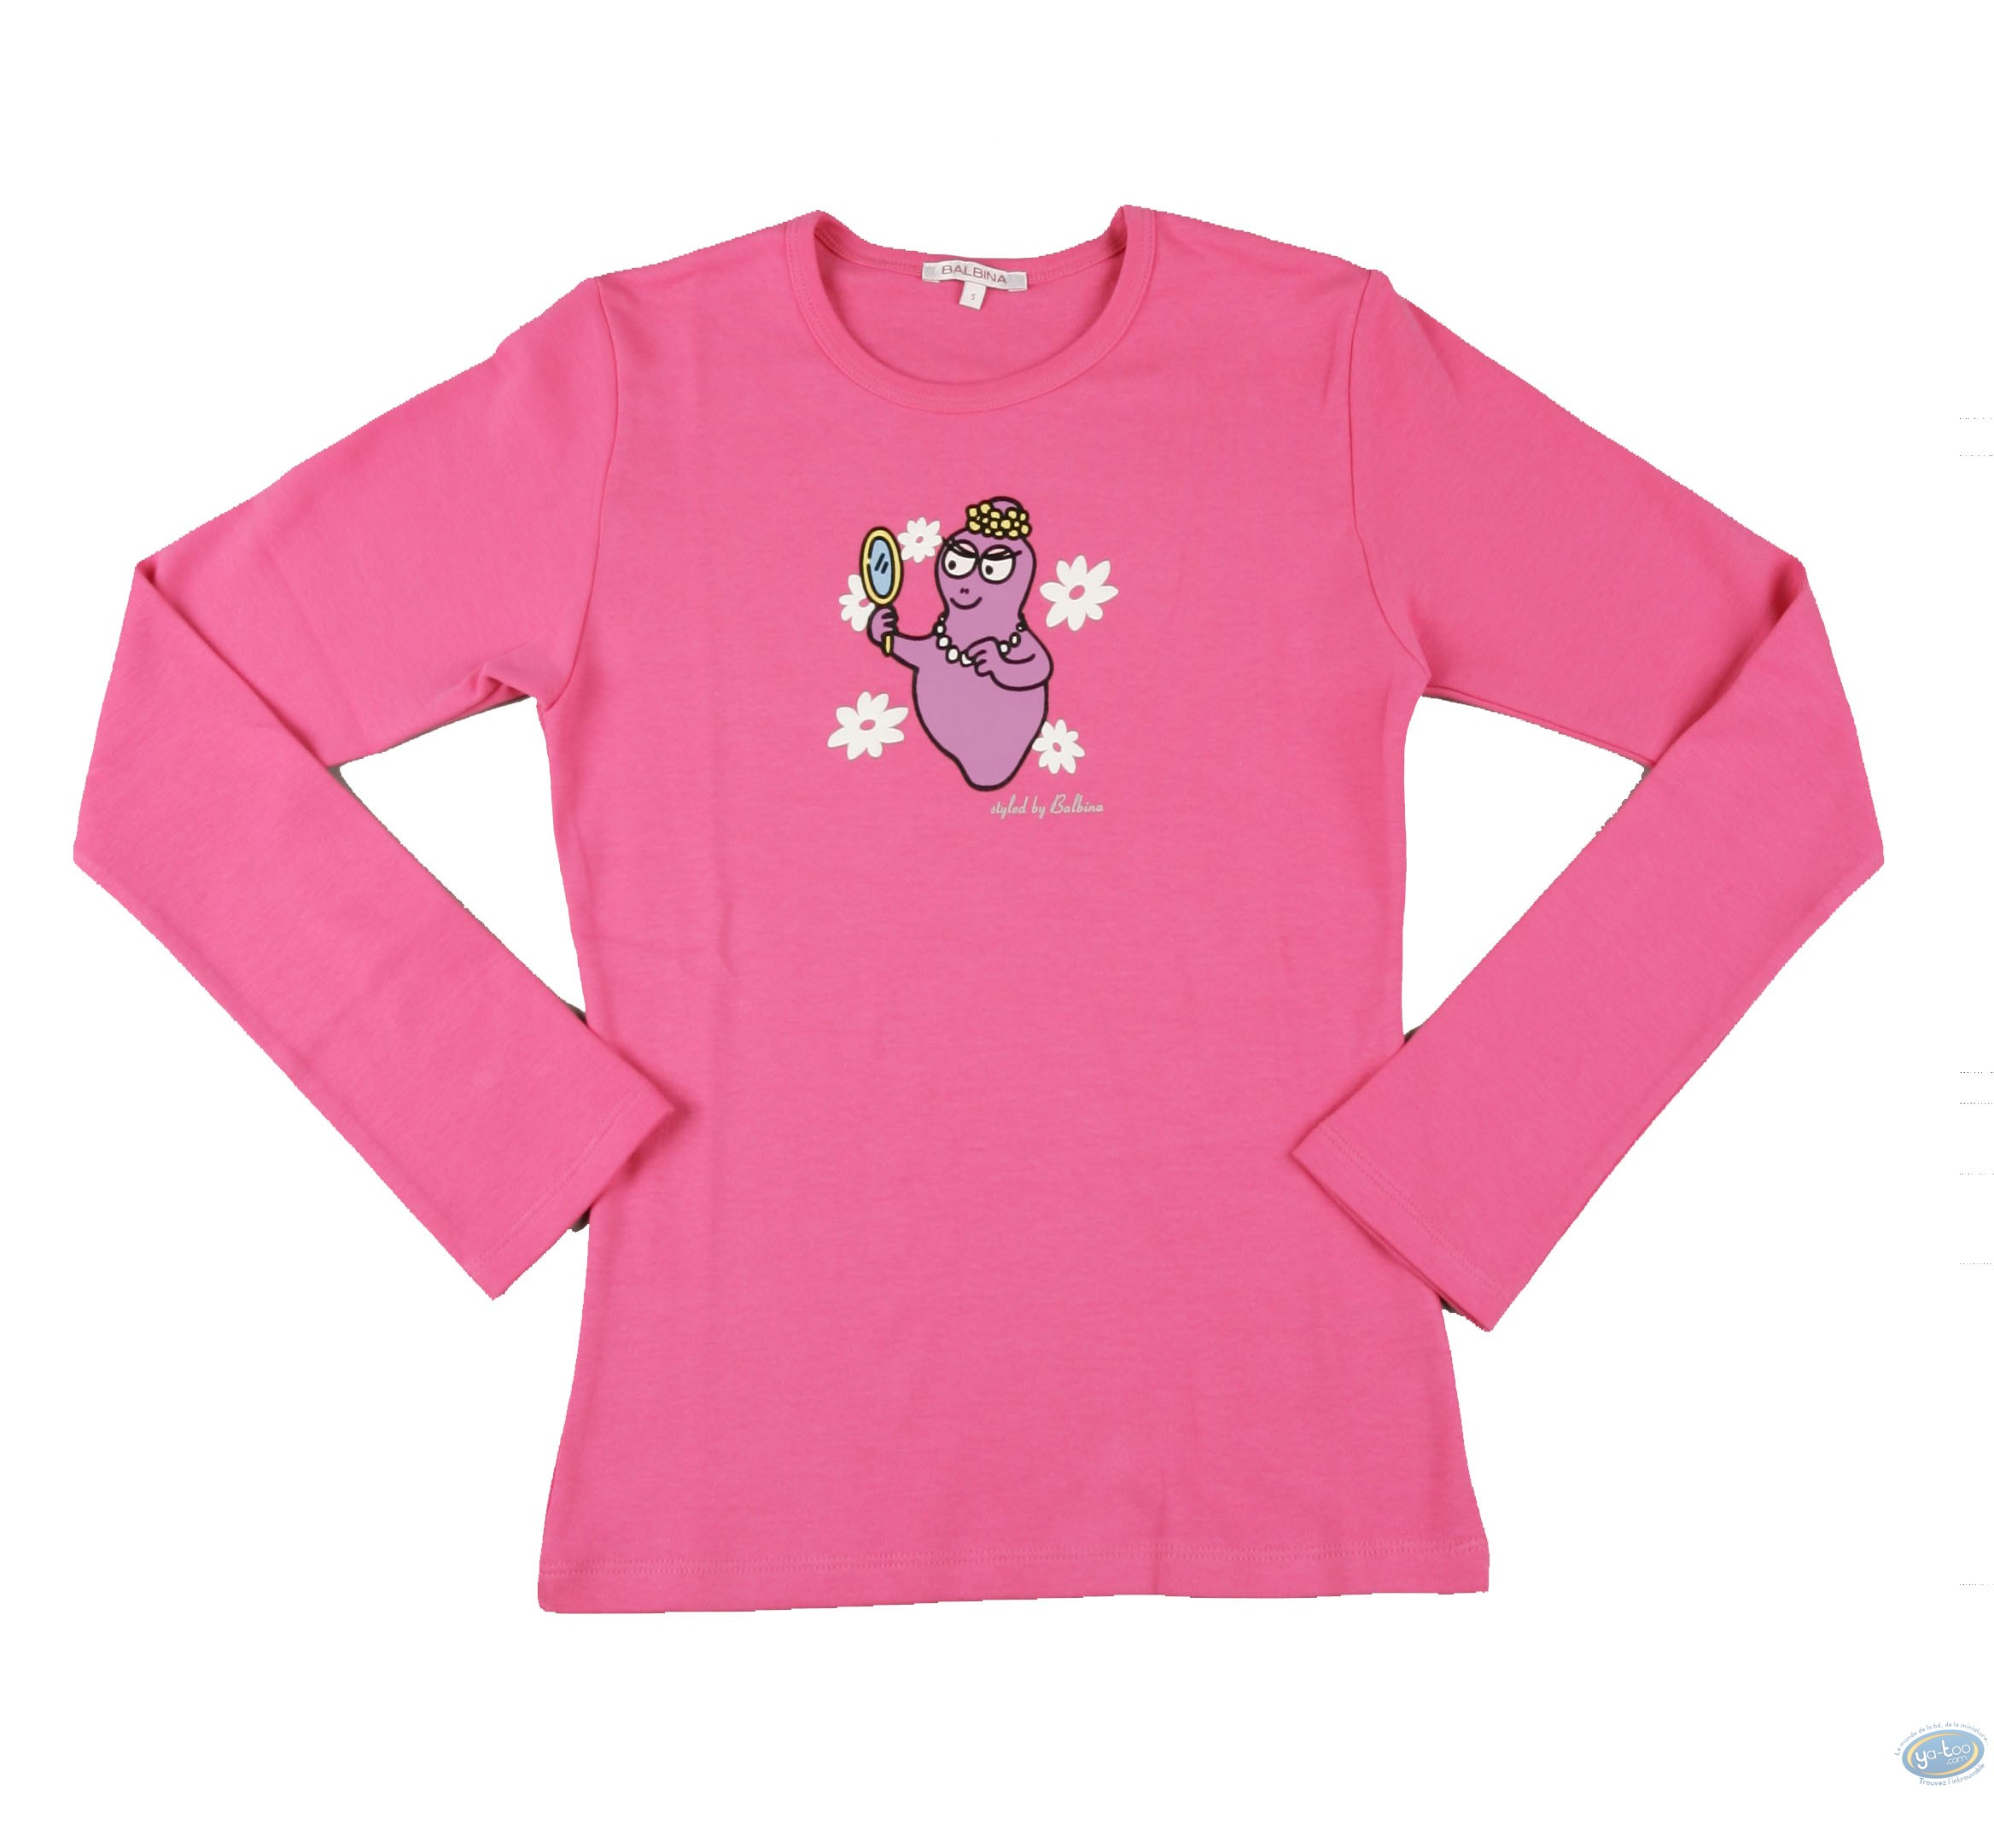 Clothes, Barbapapa : T-shirt long-sleeve pink Barbapapa: size L, mirror